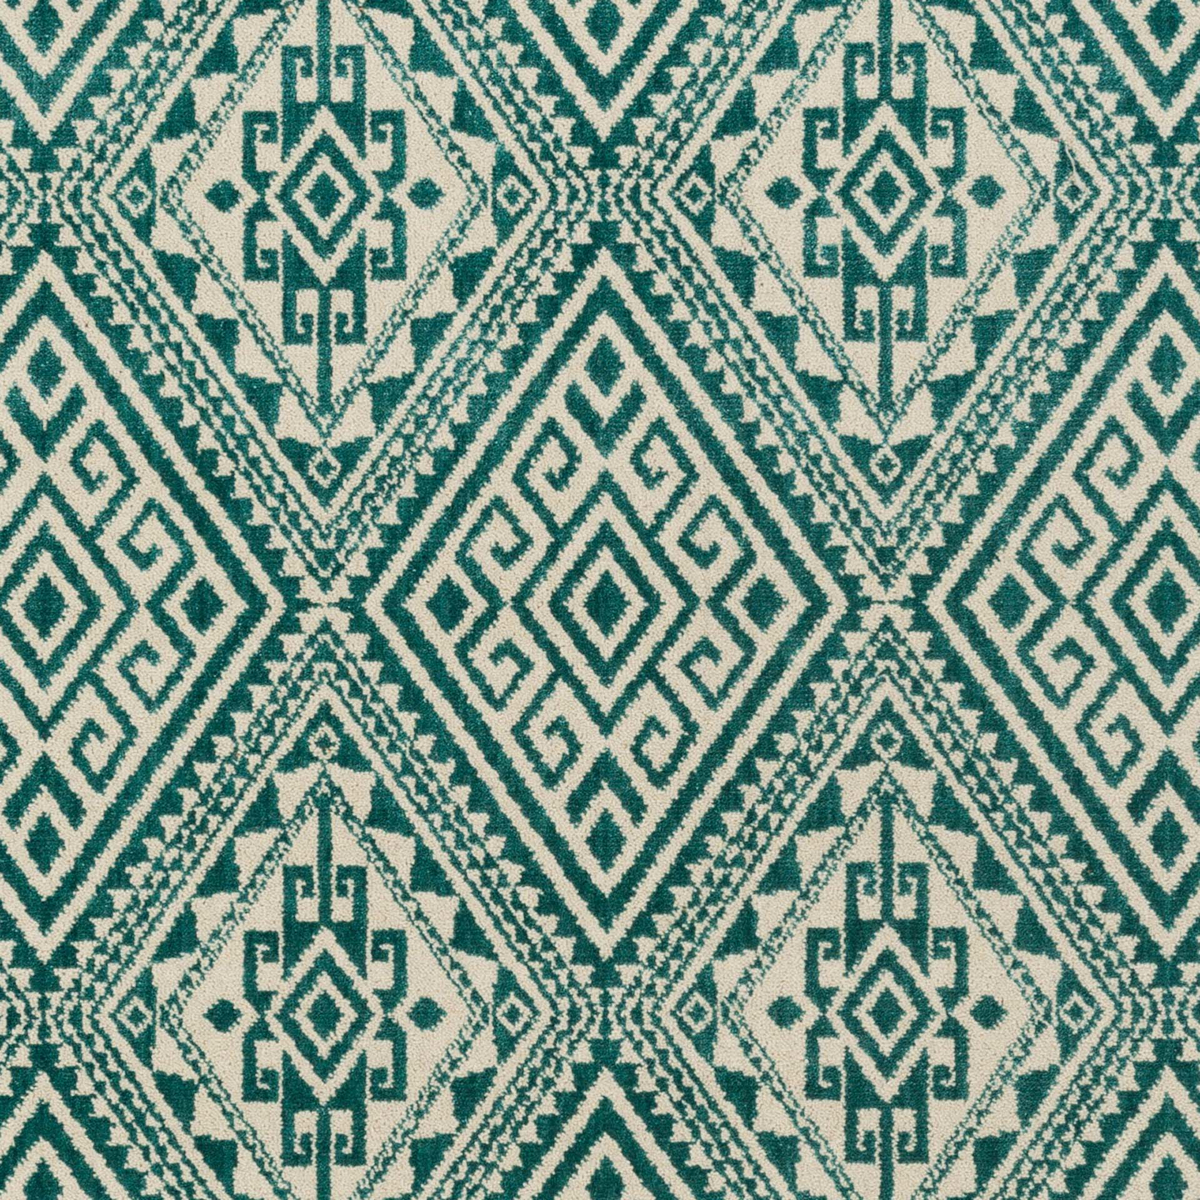 Polyester wool blend Surya Stretto area rug in a distressed teal and cream diamond tribal pattern for your living room floor decor.